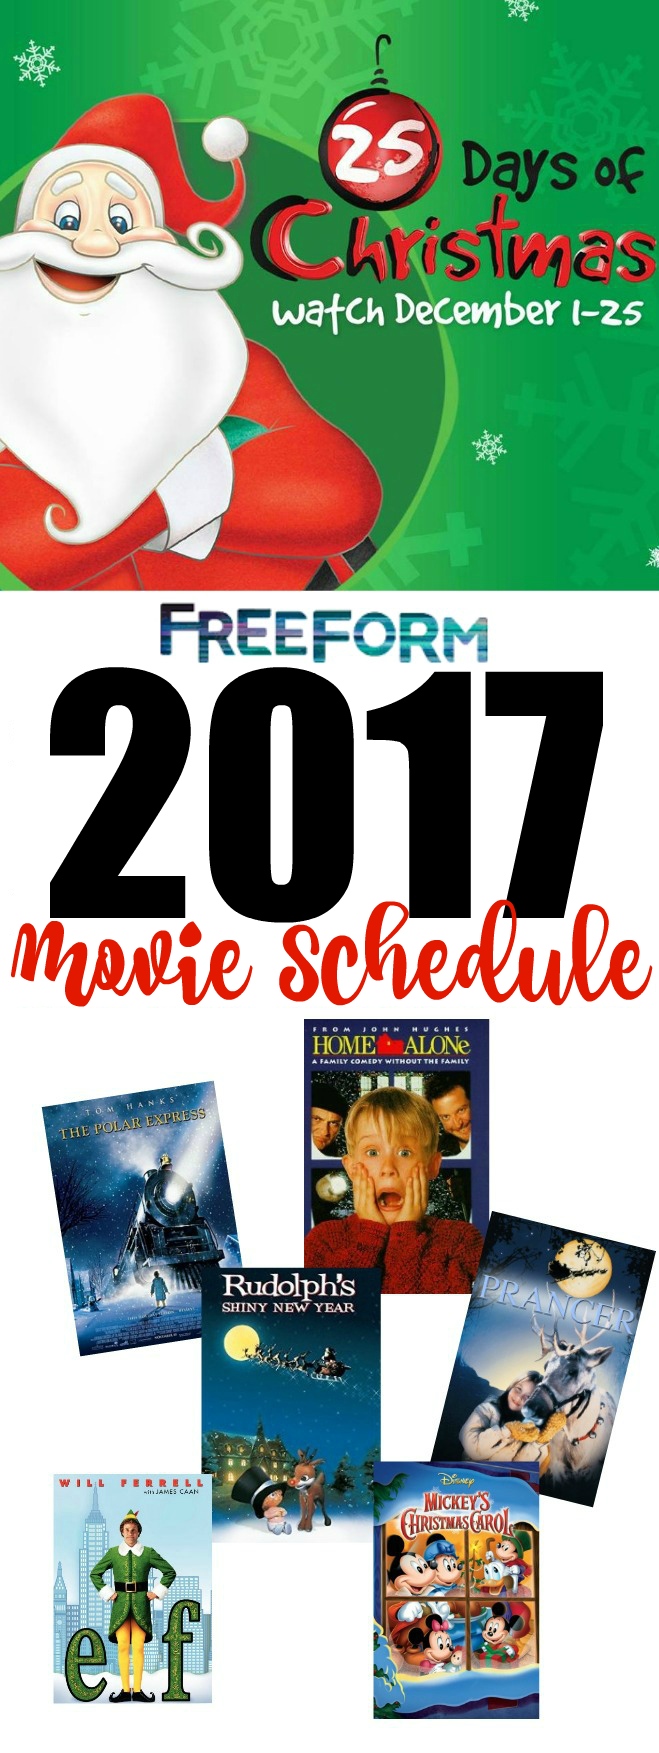 freeform countdown to 25 days of christmas tv schedule for 2017